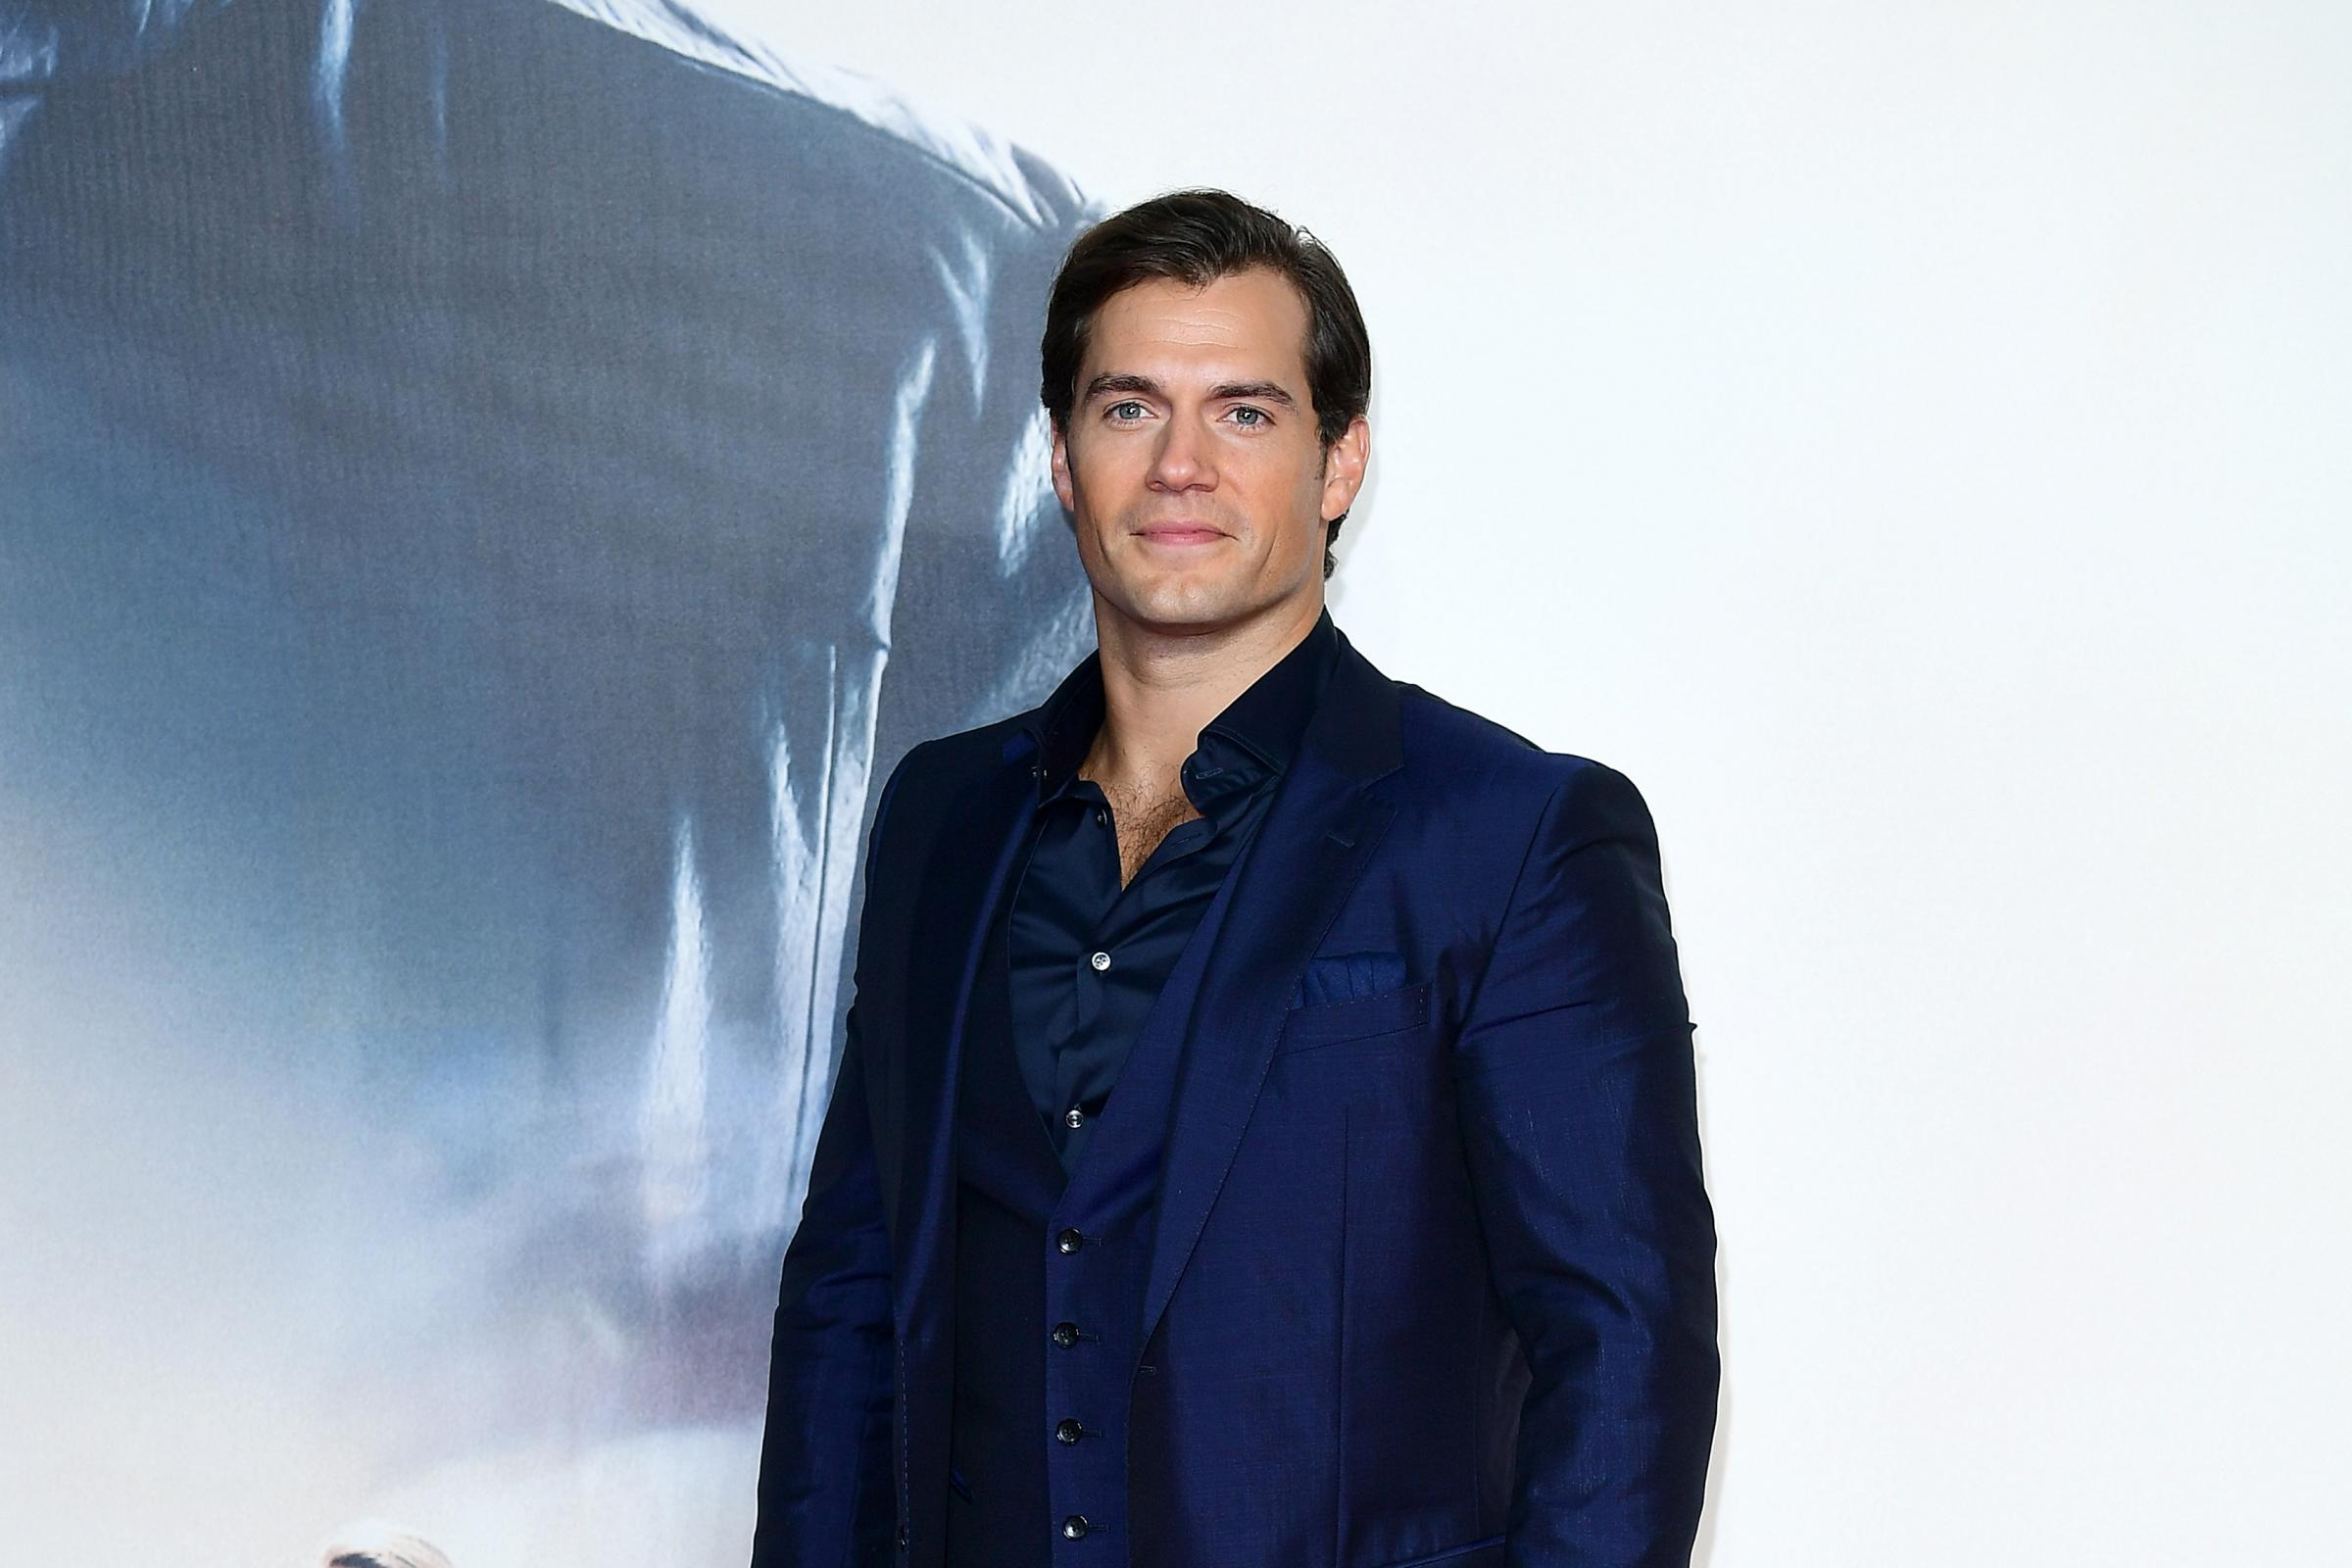 Netflix reveals first clip of Henry Cavill starring in The Witcher